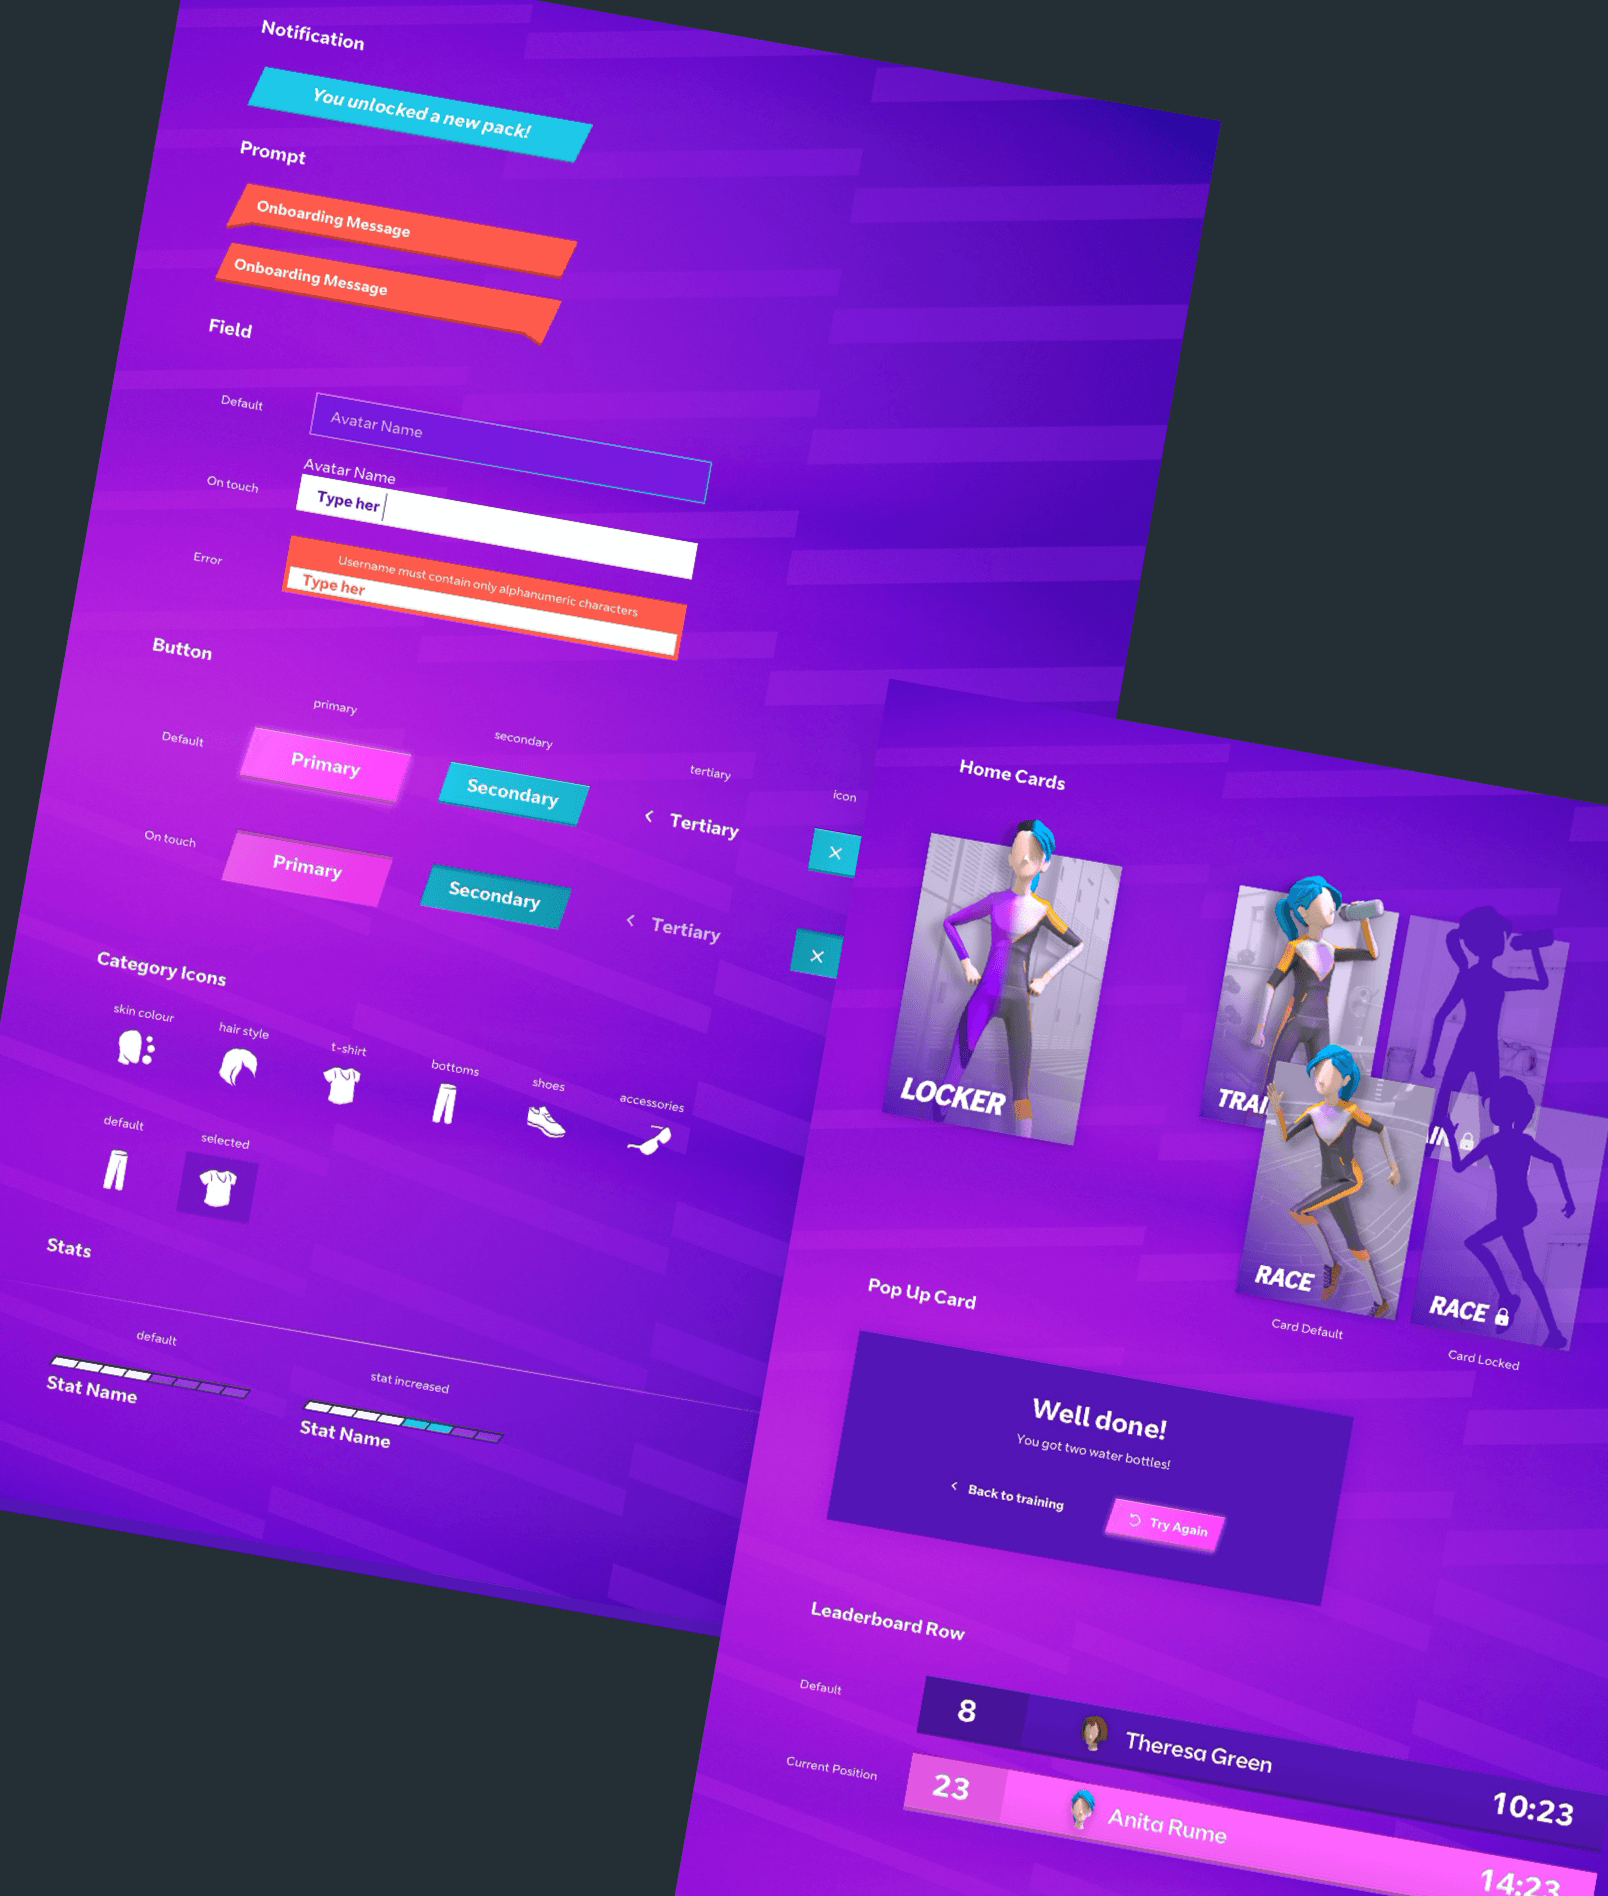 A stylesheet for the various styles used throughout the app